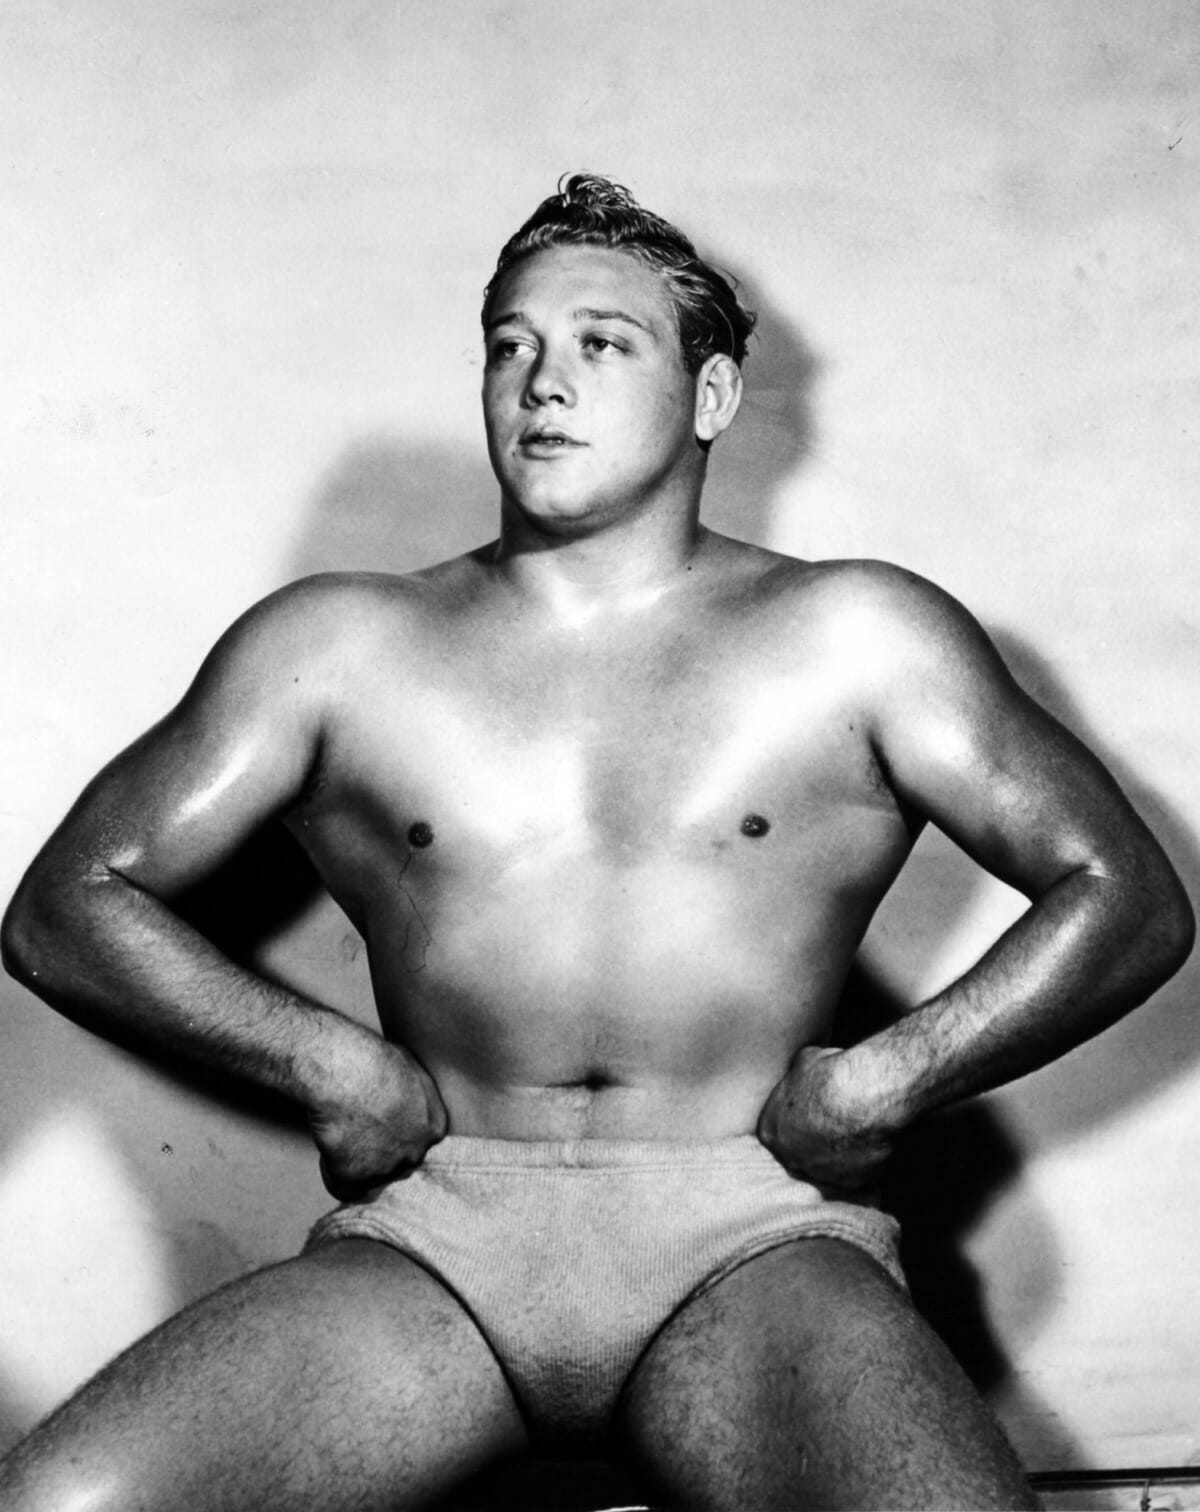 The Crippler Ray Stevens - One of the greatest wrestlers of all time.